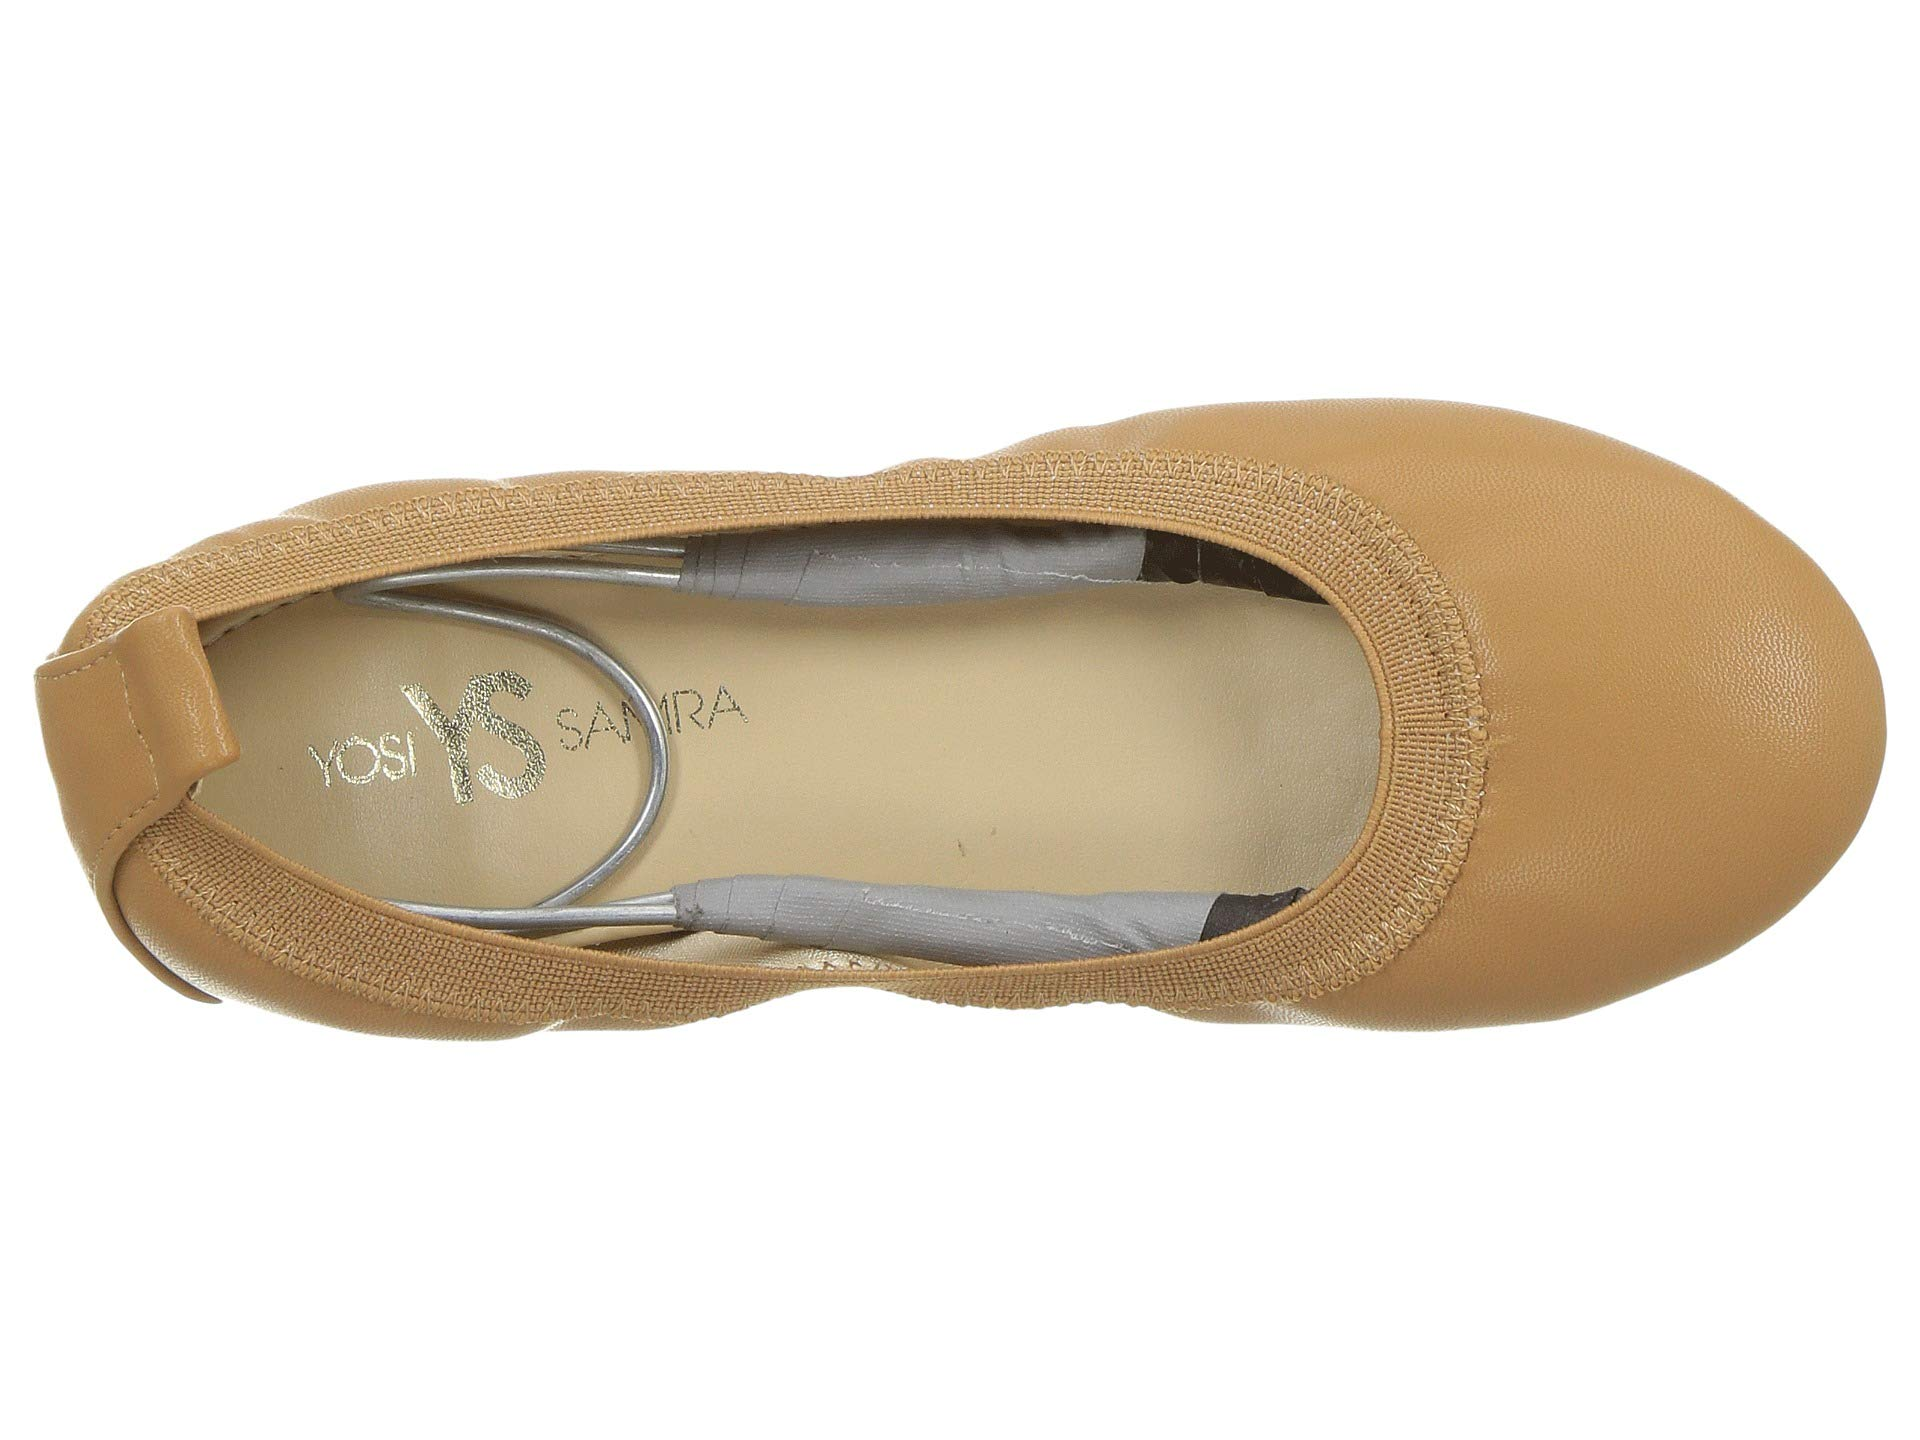 yosi samra kids miss samara nappa ballet flat (toddler/little kid/big kid)